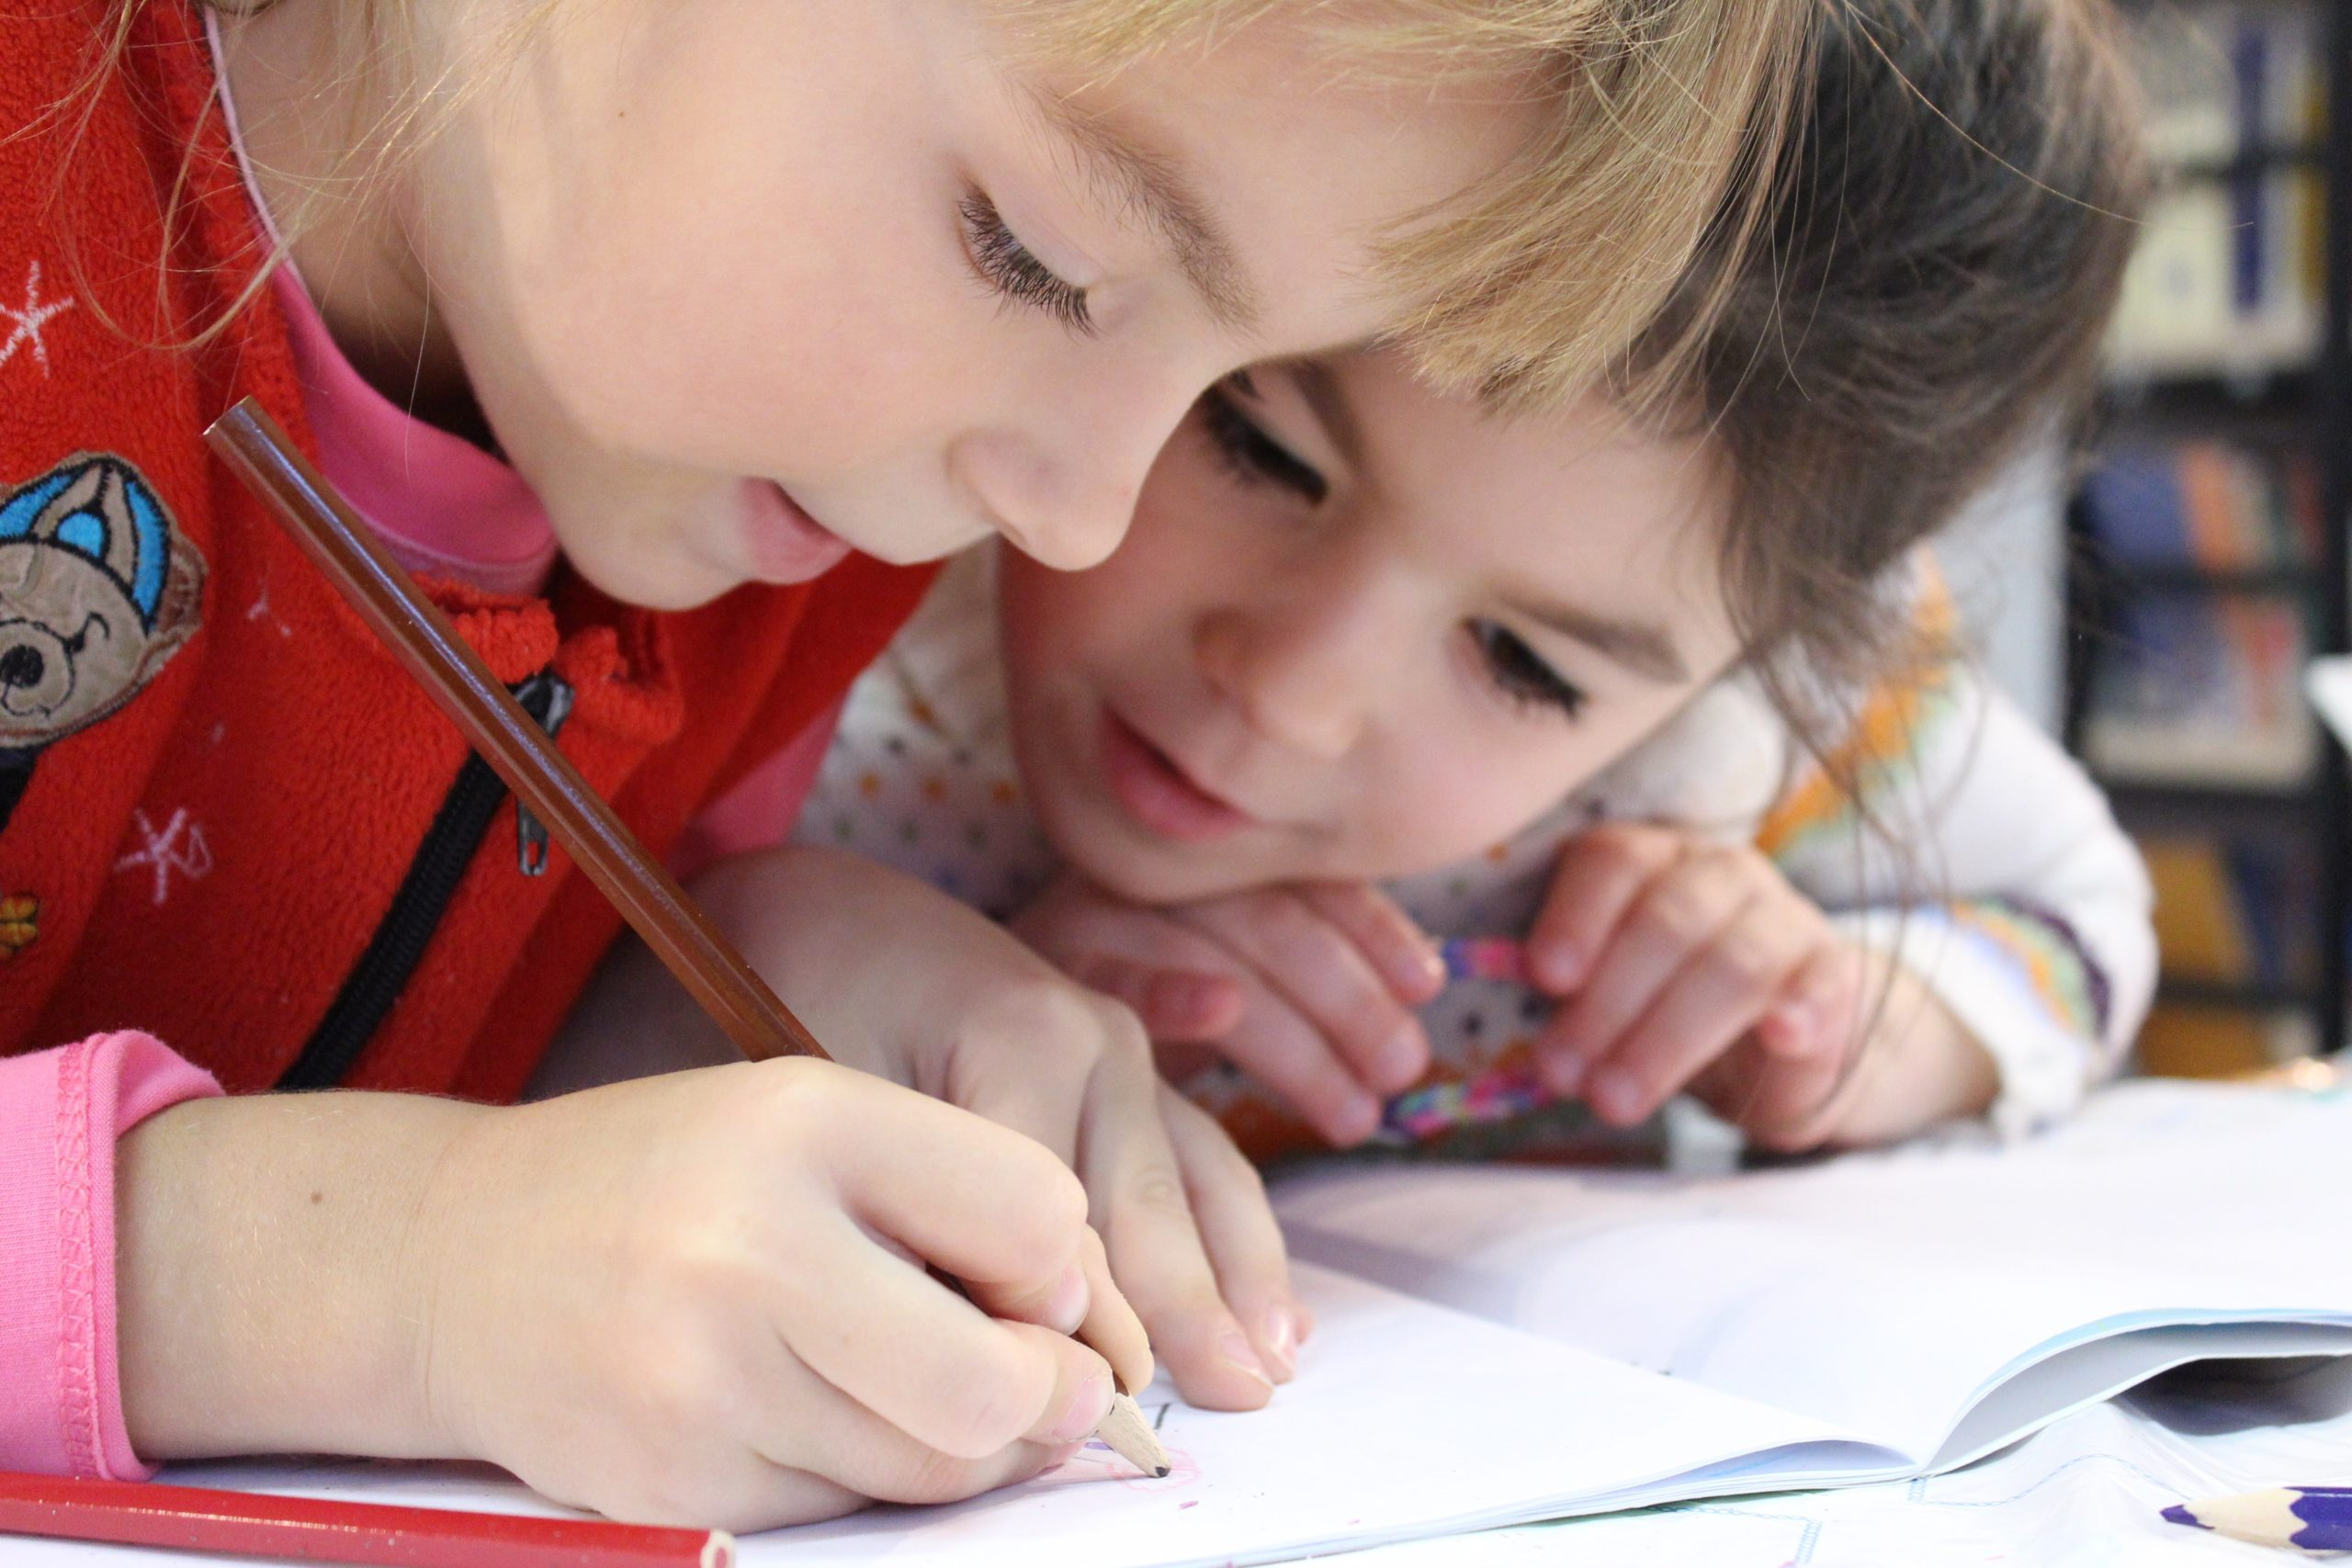 Two small children work on homework together